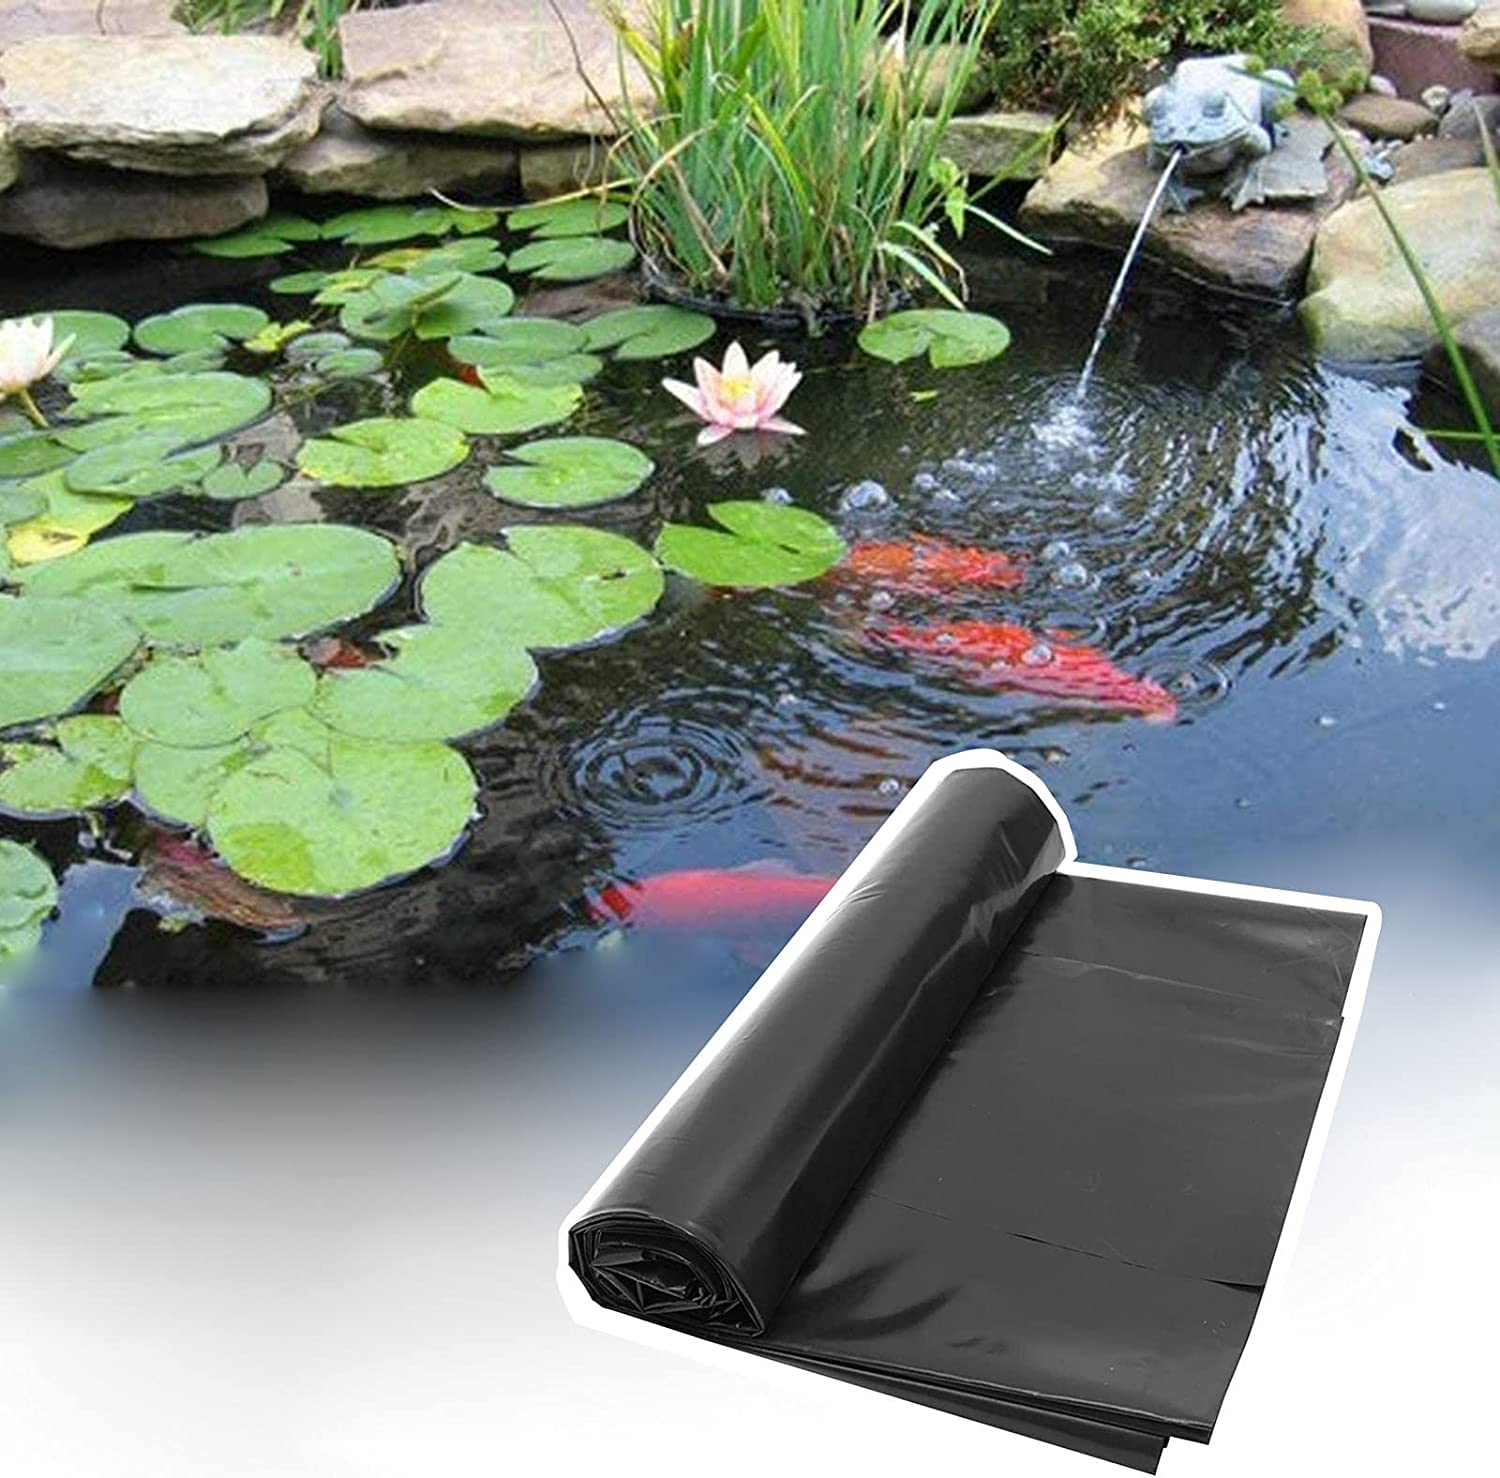 price Small Pond Liner 4x4Ft Preformed Durable Koi P Ranking TOP4 Rubber